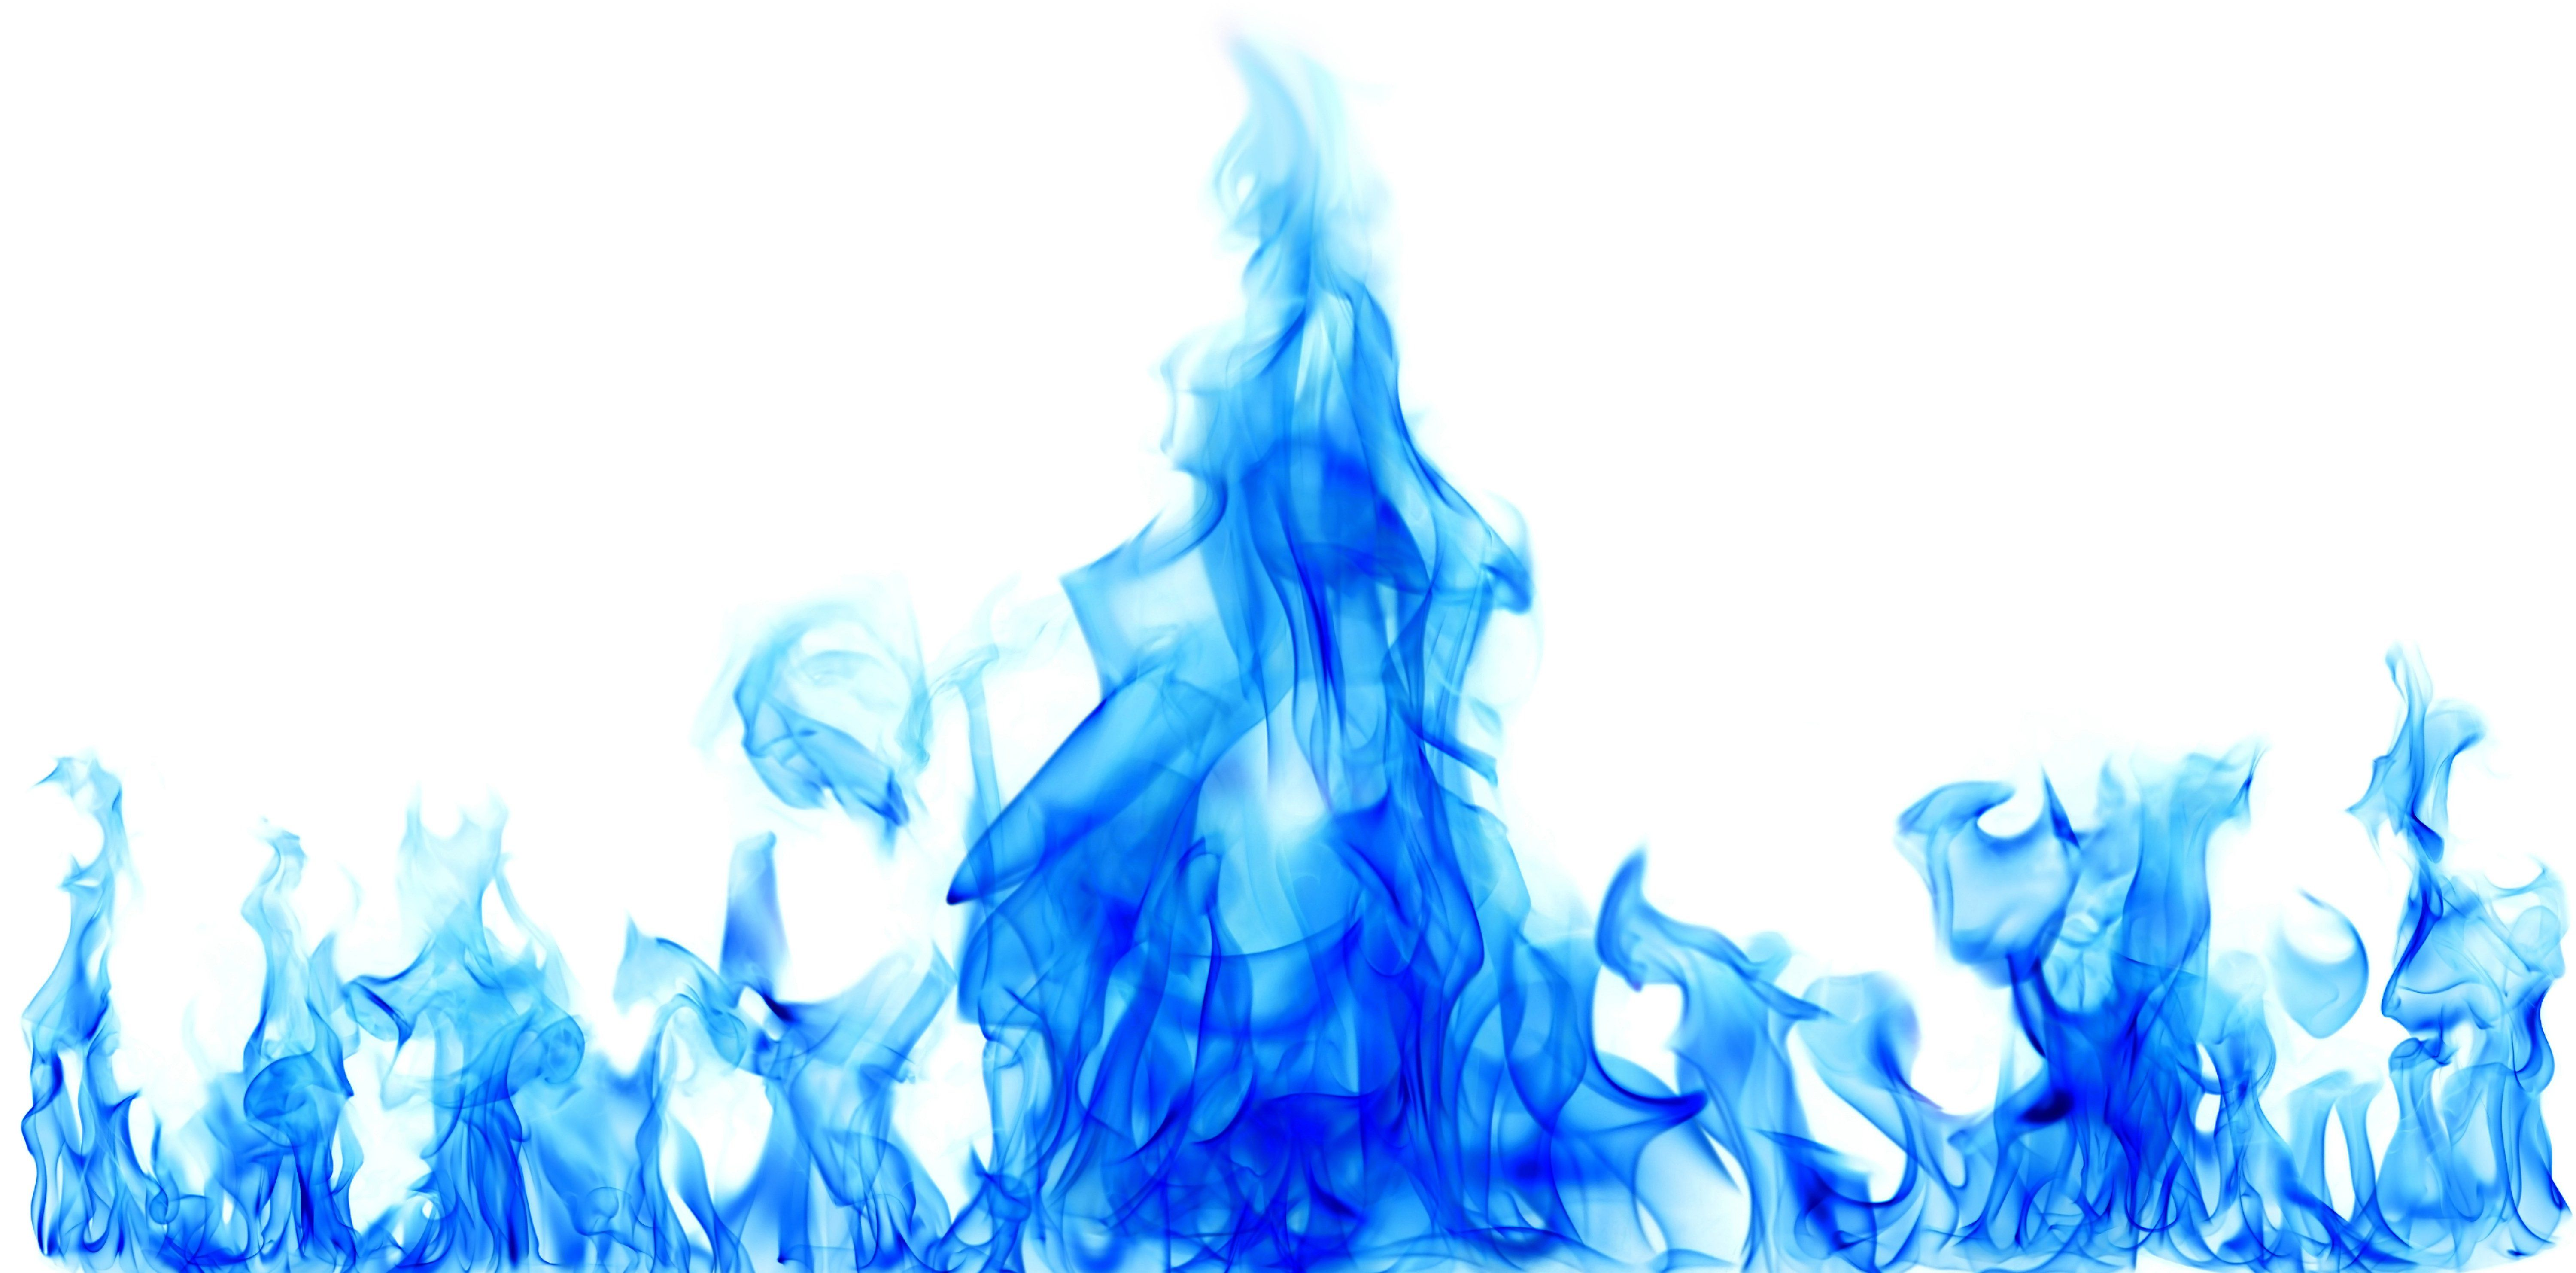 Flames white background border flame border w pictures to pin on - Blue Flames Png Transparent 34525 Free Icons And Png Backgrounds